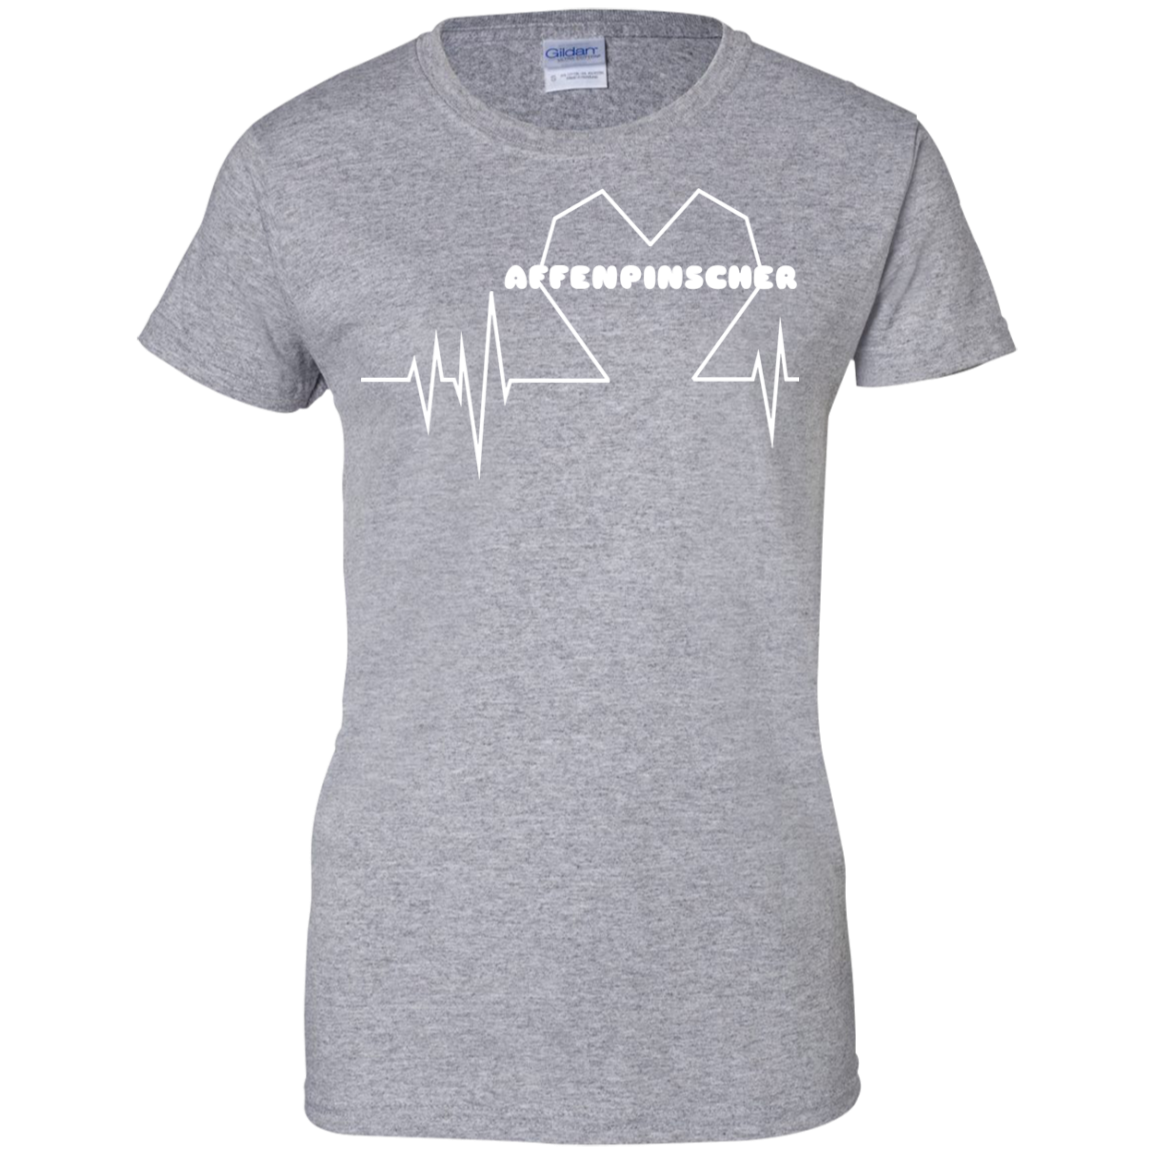 Affenpinscher Heartbeat Ladies Tees